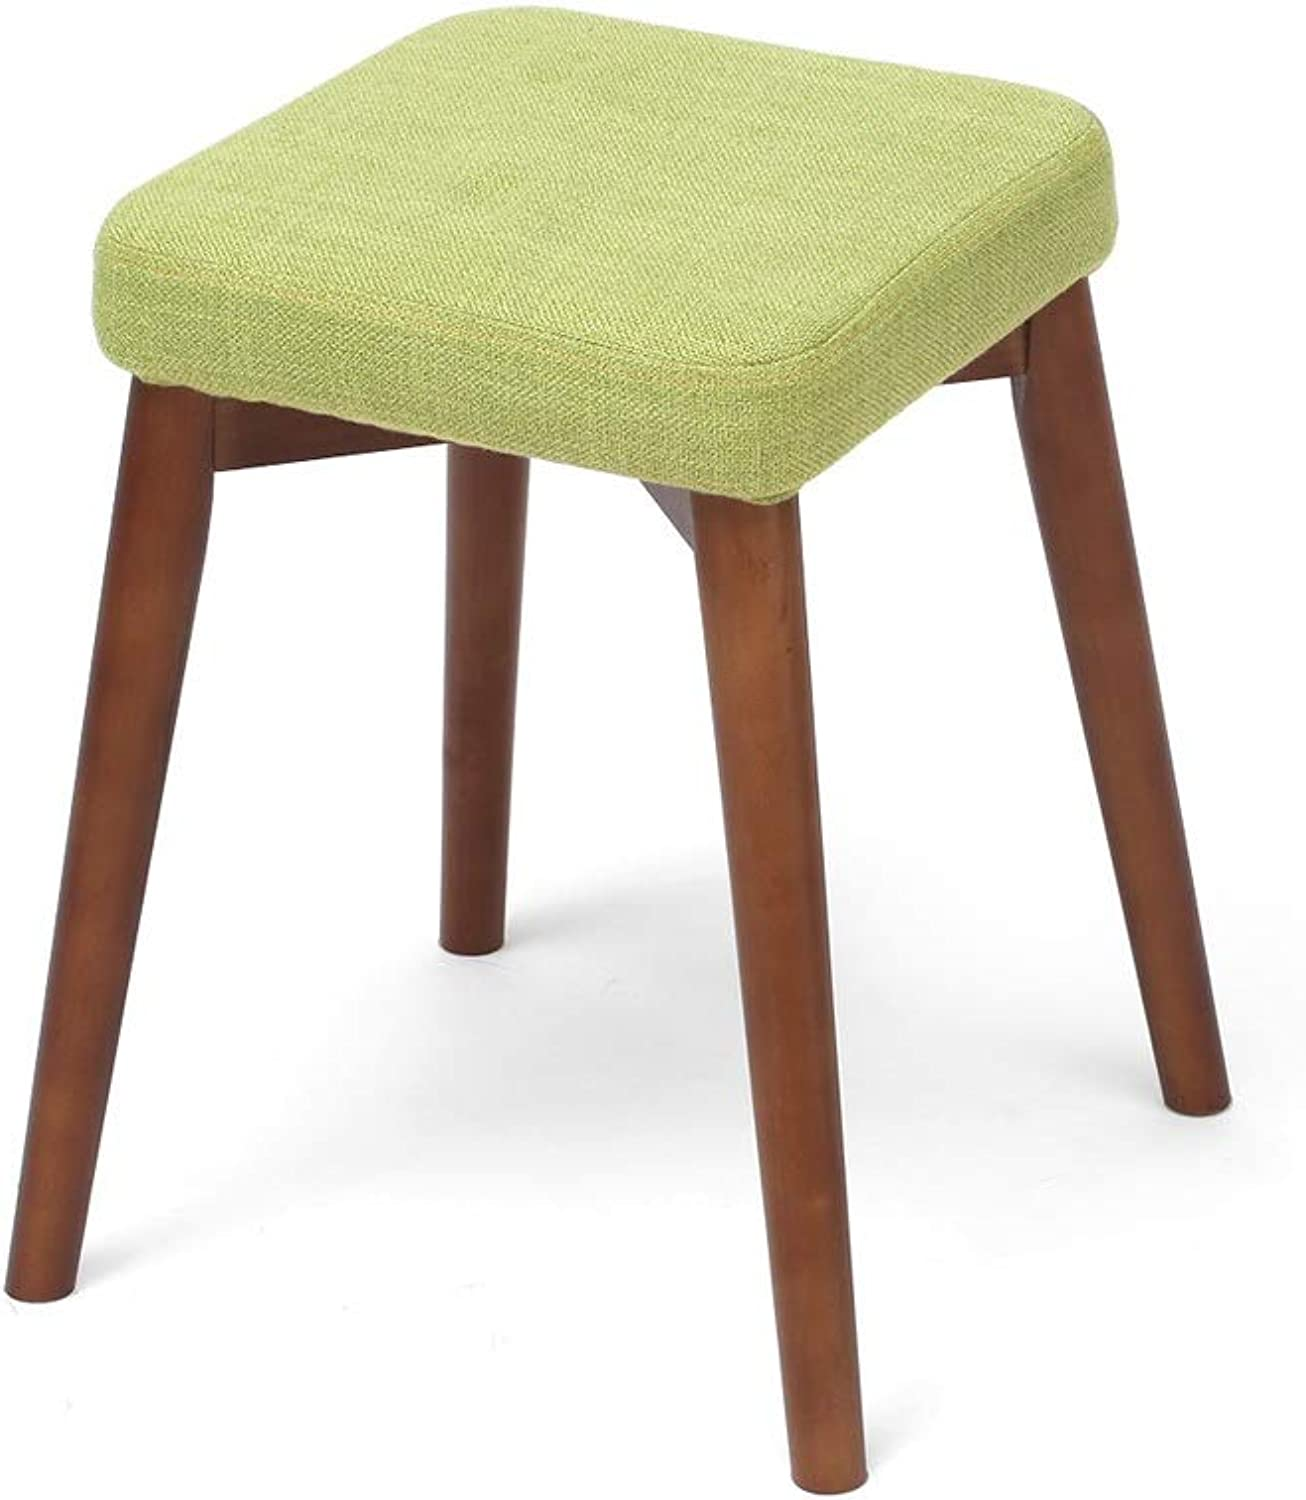 Solid Wood Stool, Kitchen Dining Chair Change shoes Stool with Green Cushion Square Bench Dark Wooden Footstool (color   Walnut)